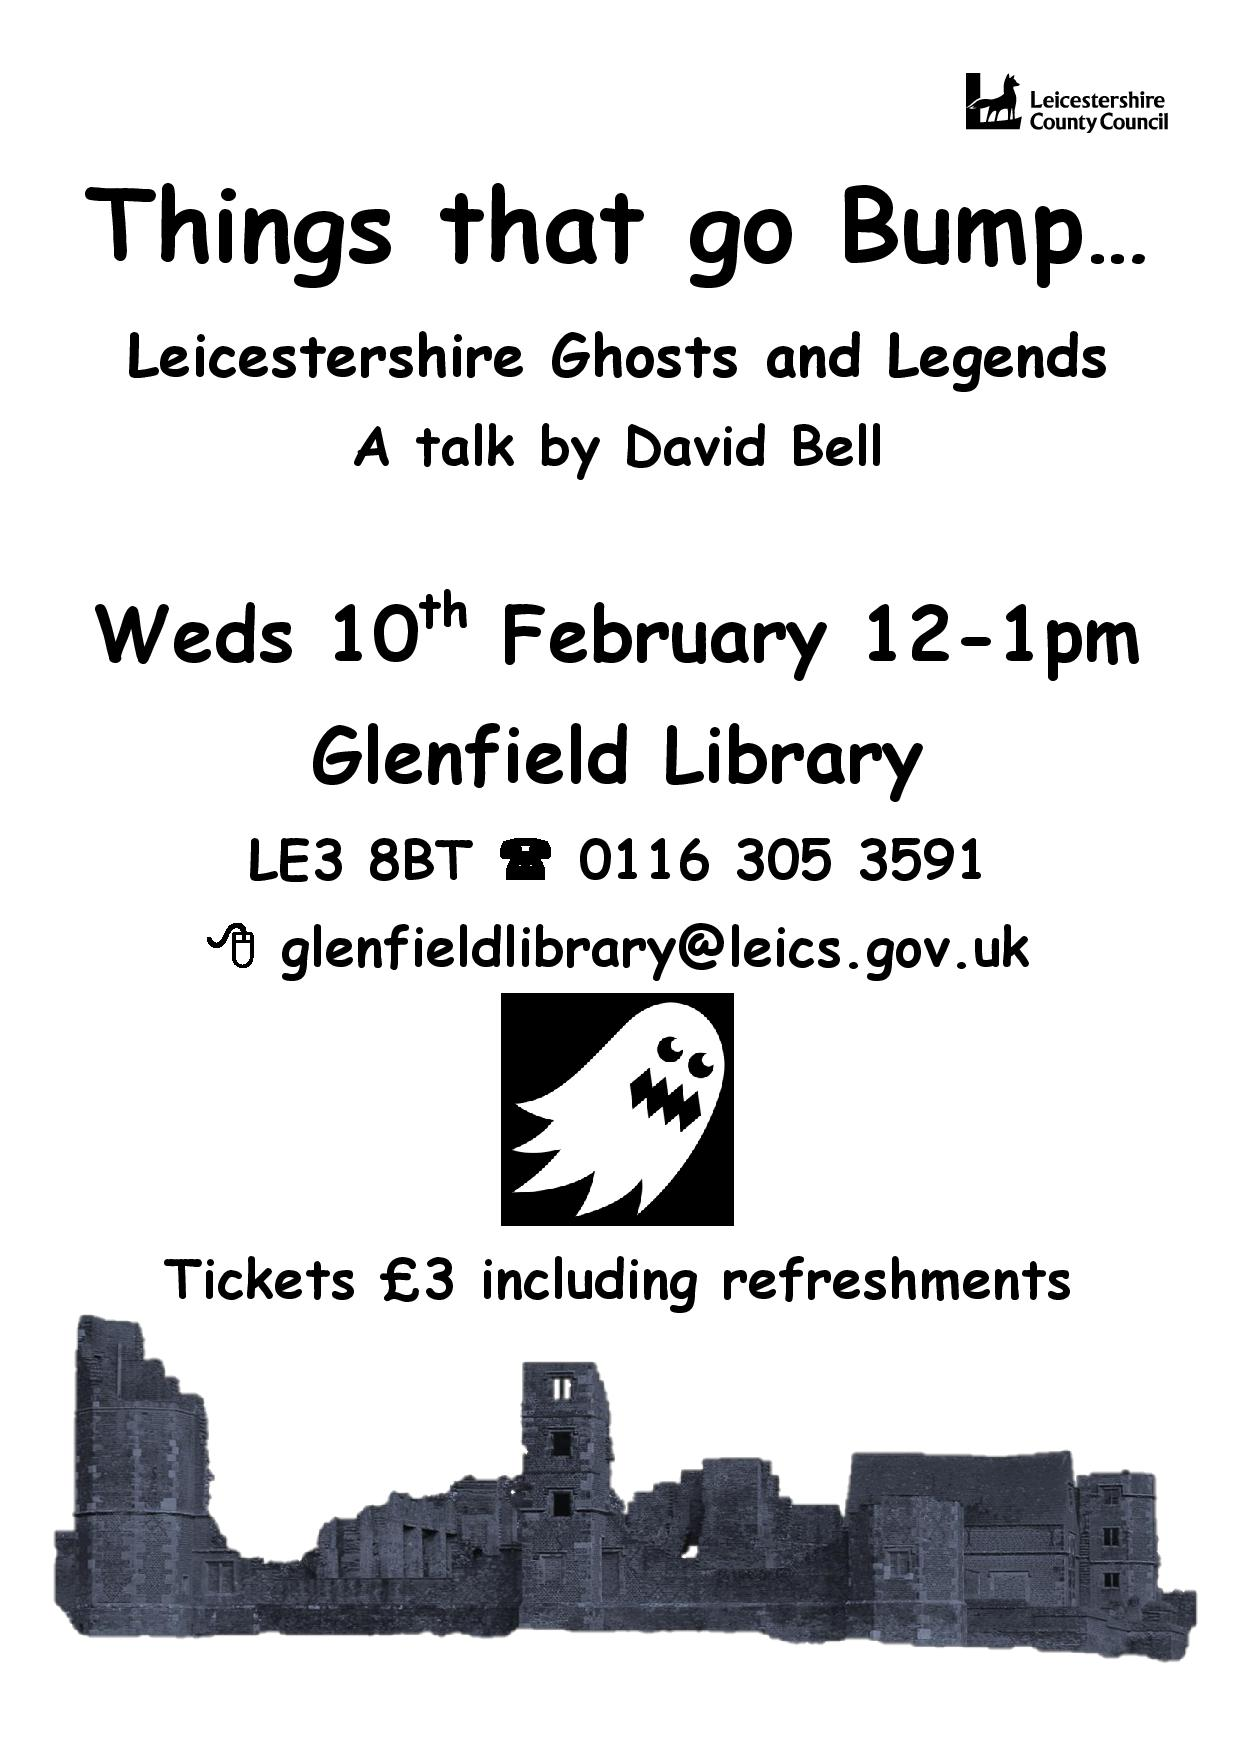 RT @leicslibraries: Things That Go Bump In The Night-Leics Ghosts & Legends with David Bell #Glenfield Library Wed 10 Feb 12-1. Price £3 ht…